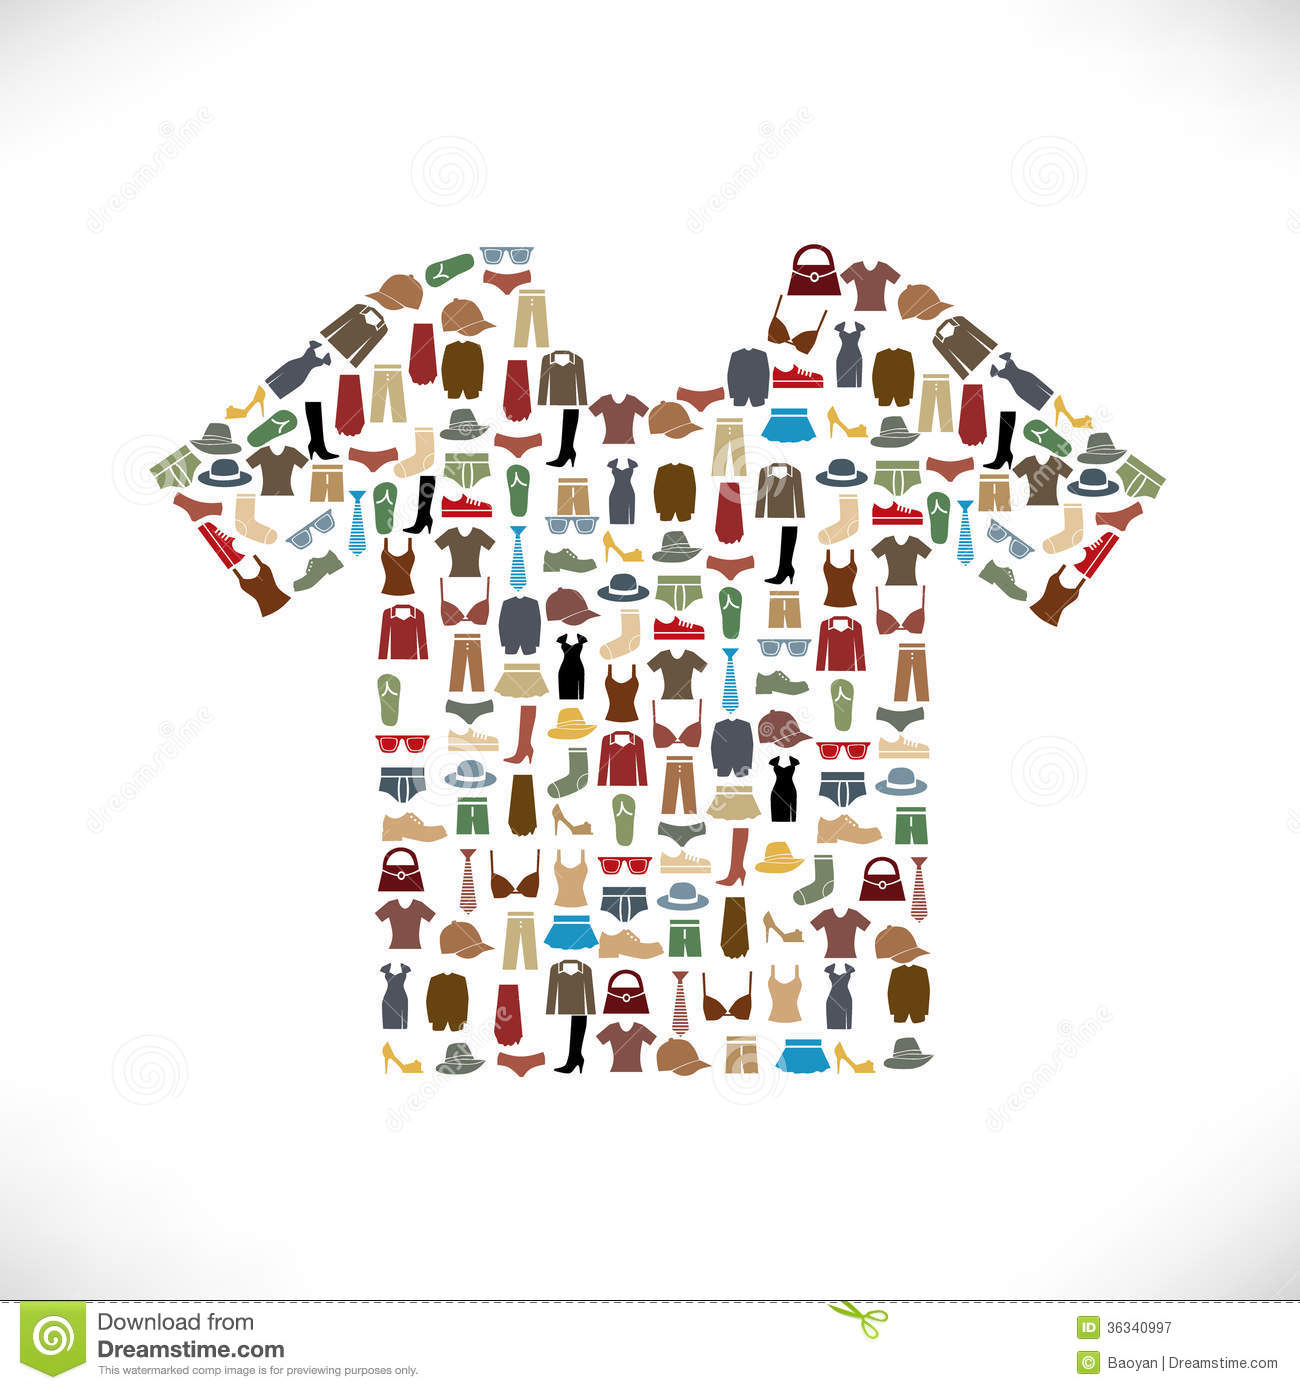 clothes as a symbol of social Towards a definition of the uniform clothing is a silent but visual marker of social  identities and relationships it has the ability to communicate multilayered.